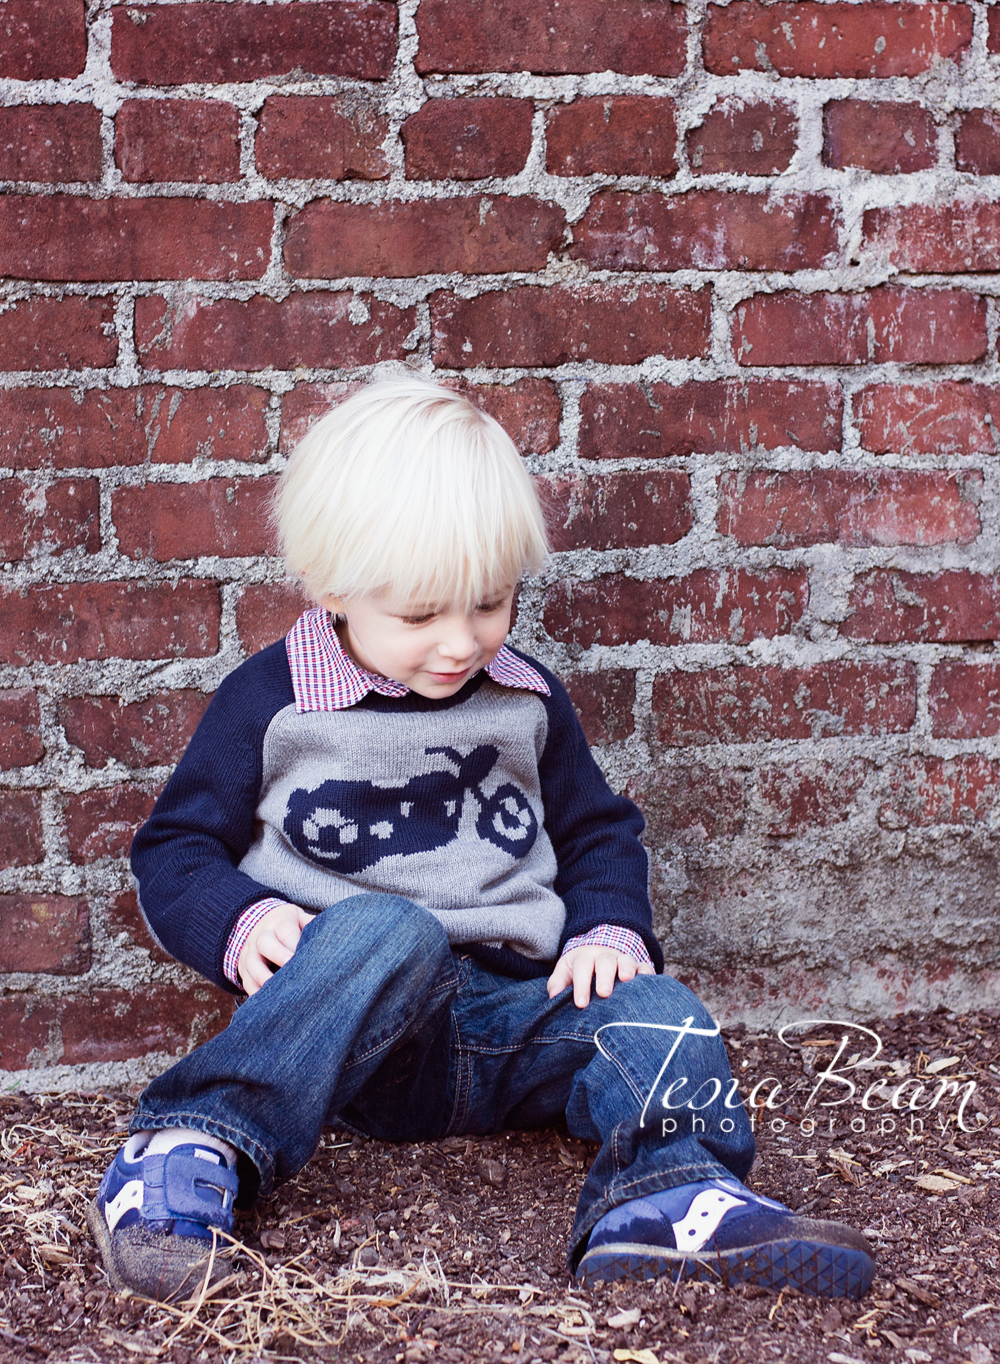 Such a cool kid! (c)Tesiabeamphotography.com